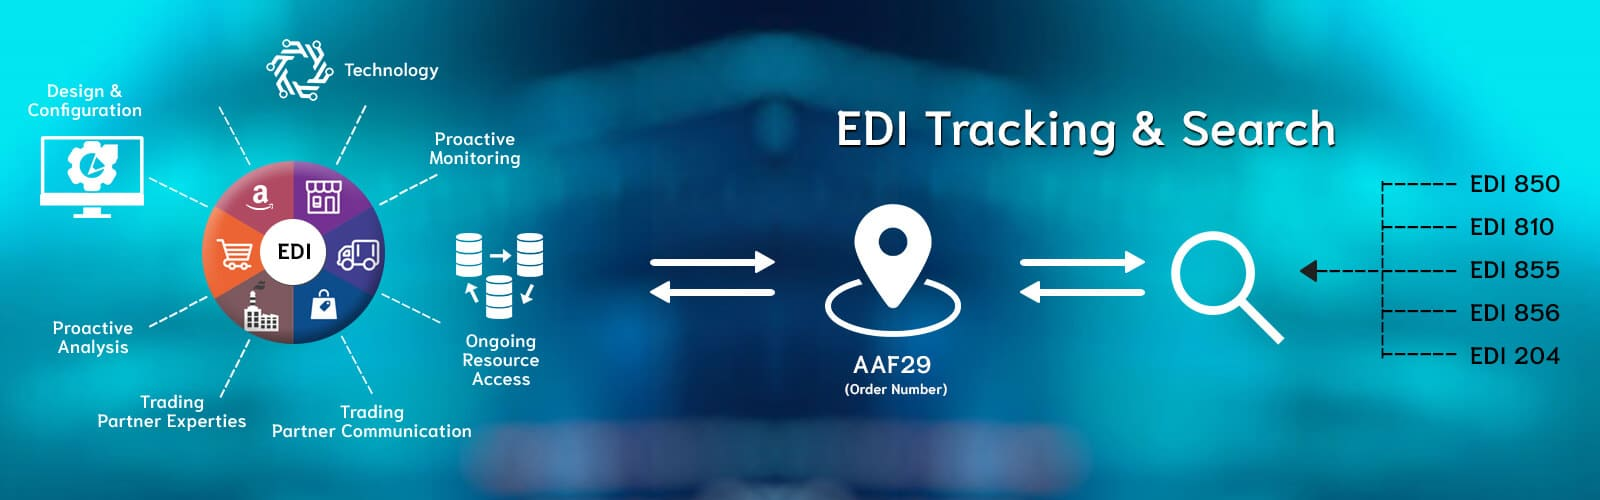 EDI-Tracking-And-Search